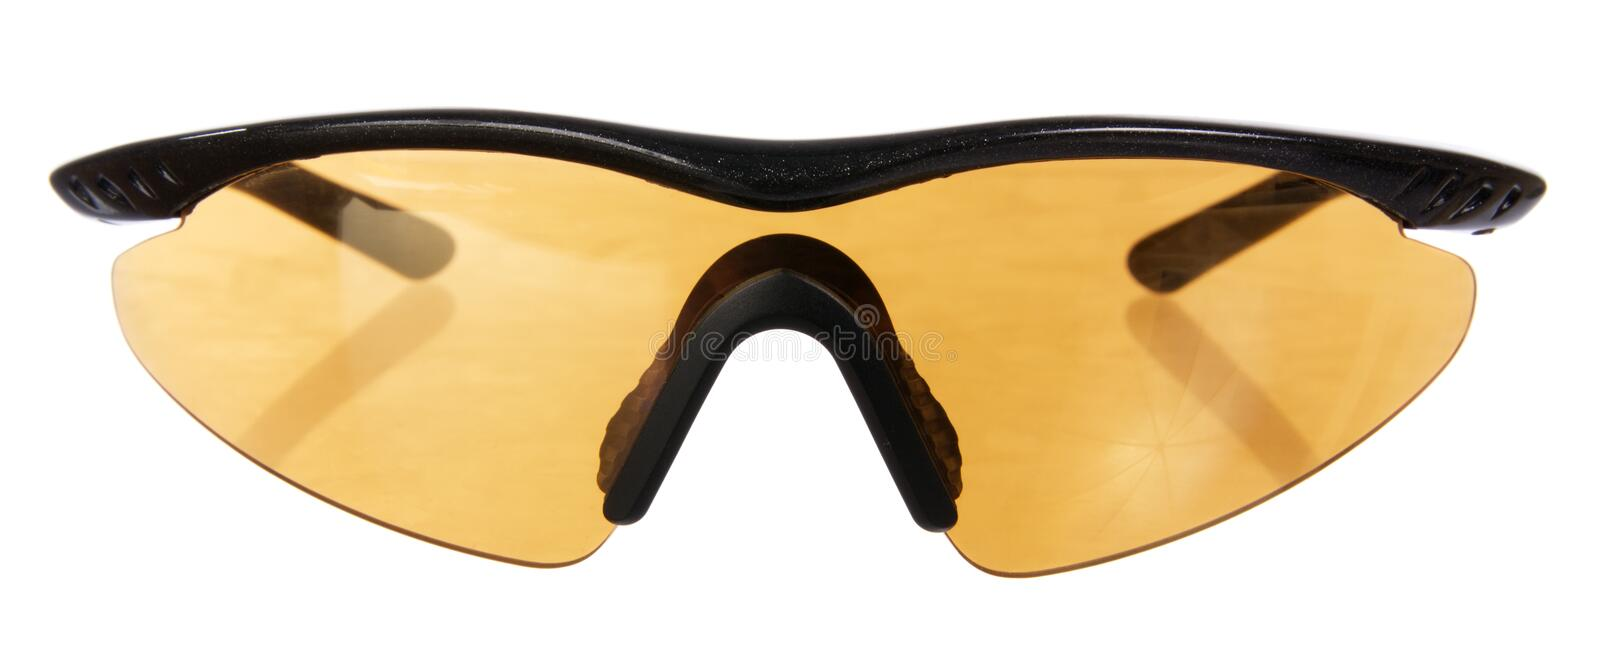 Download Stylish sunglasses stock image. Image of protective, plastic - 20700885